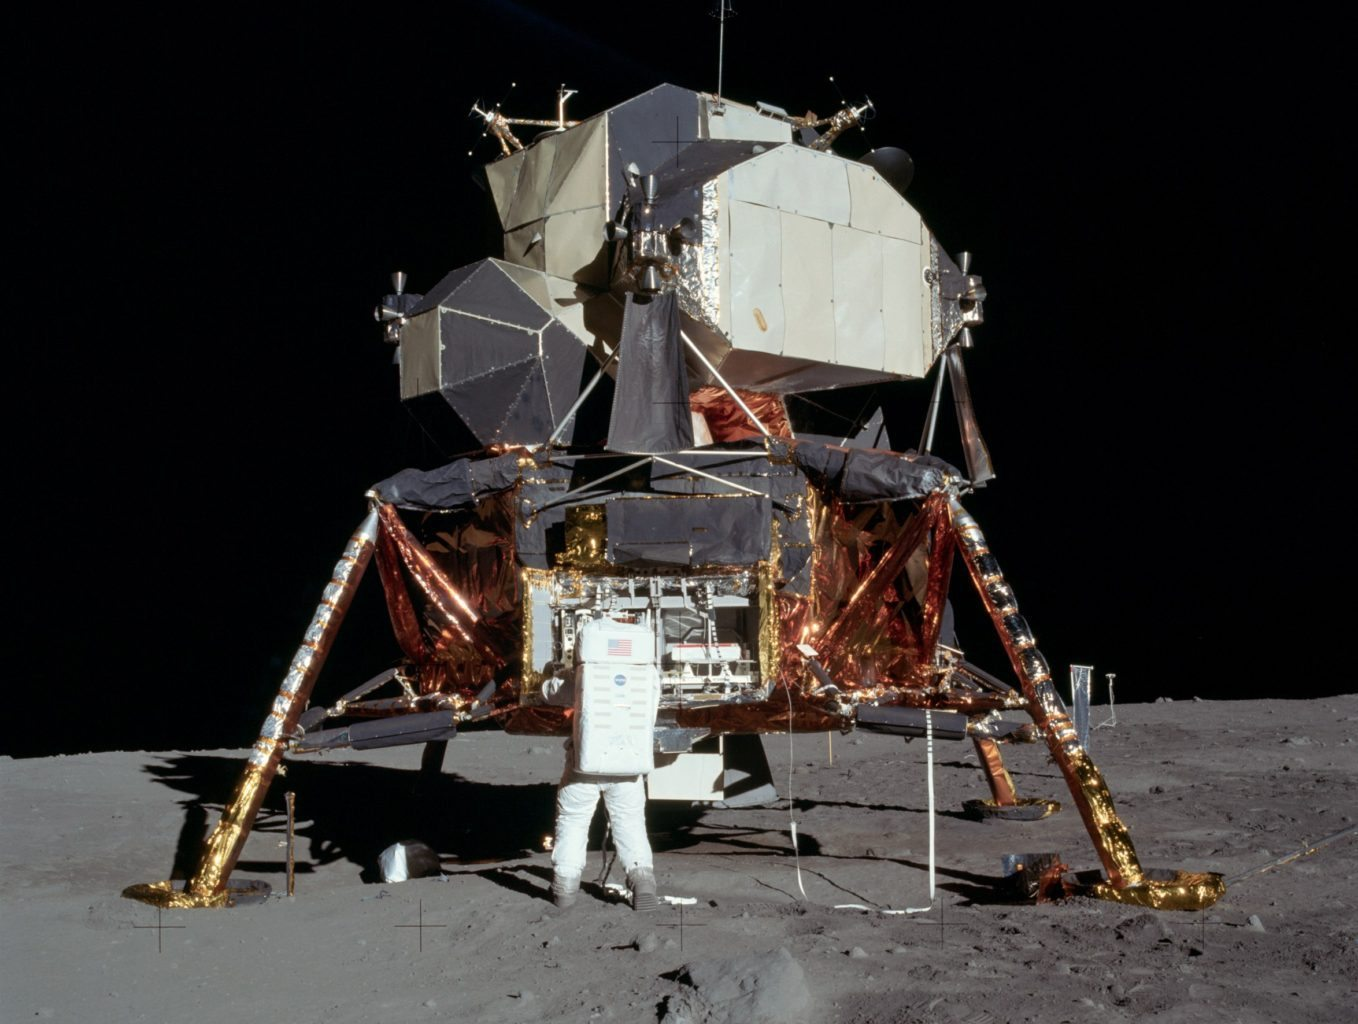 Image: Apollo 1, landed on the moon